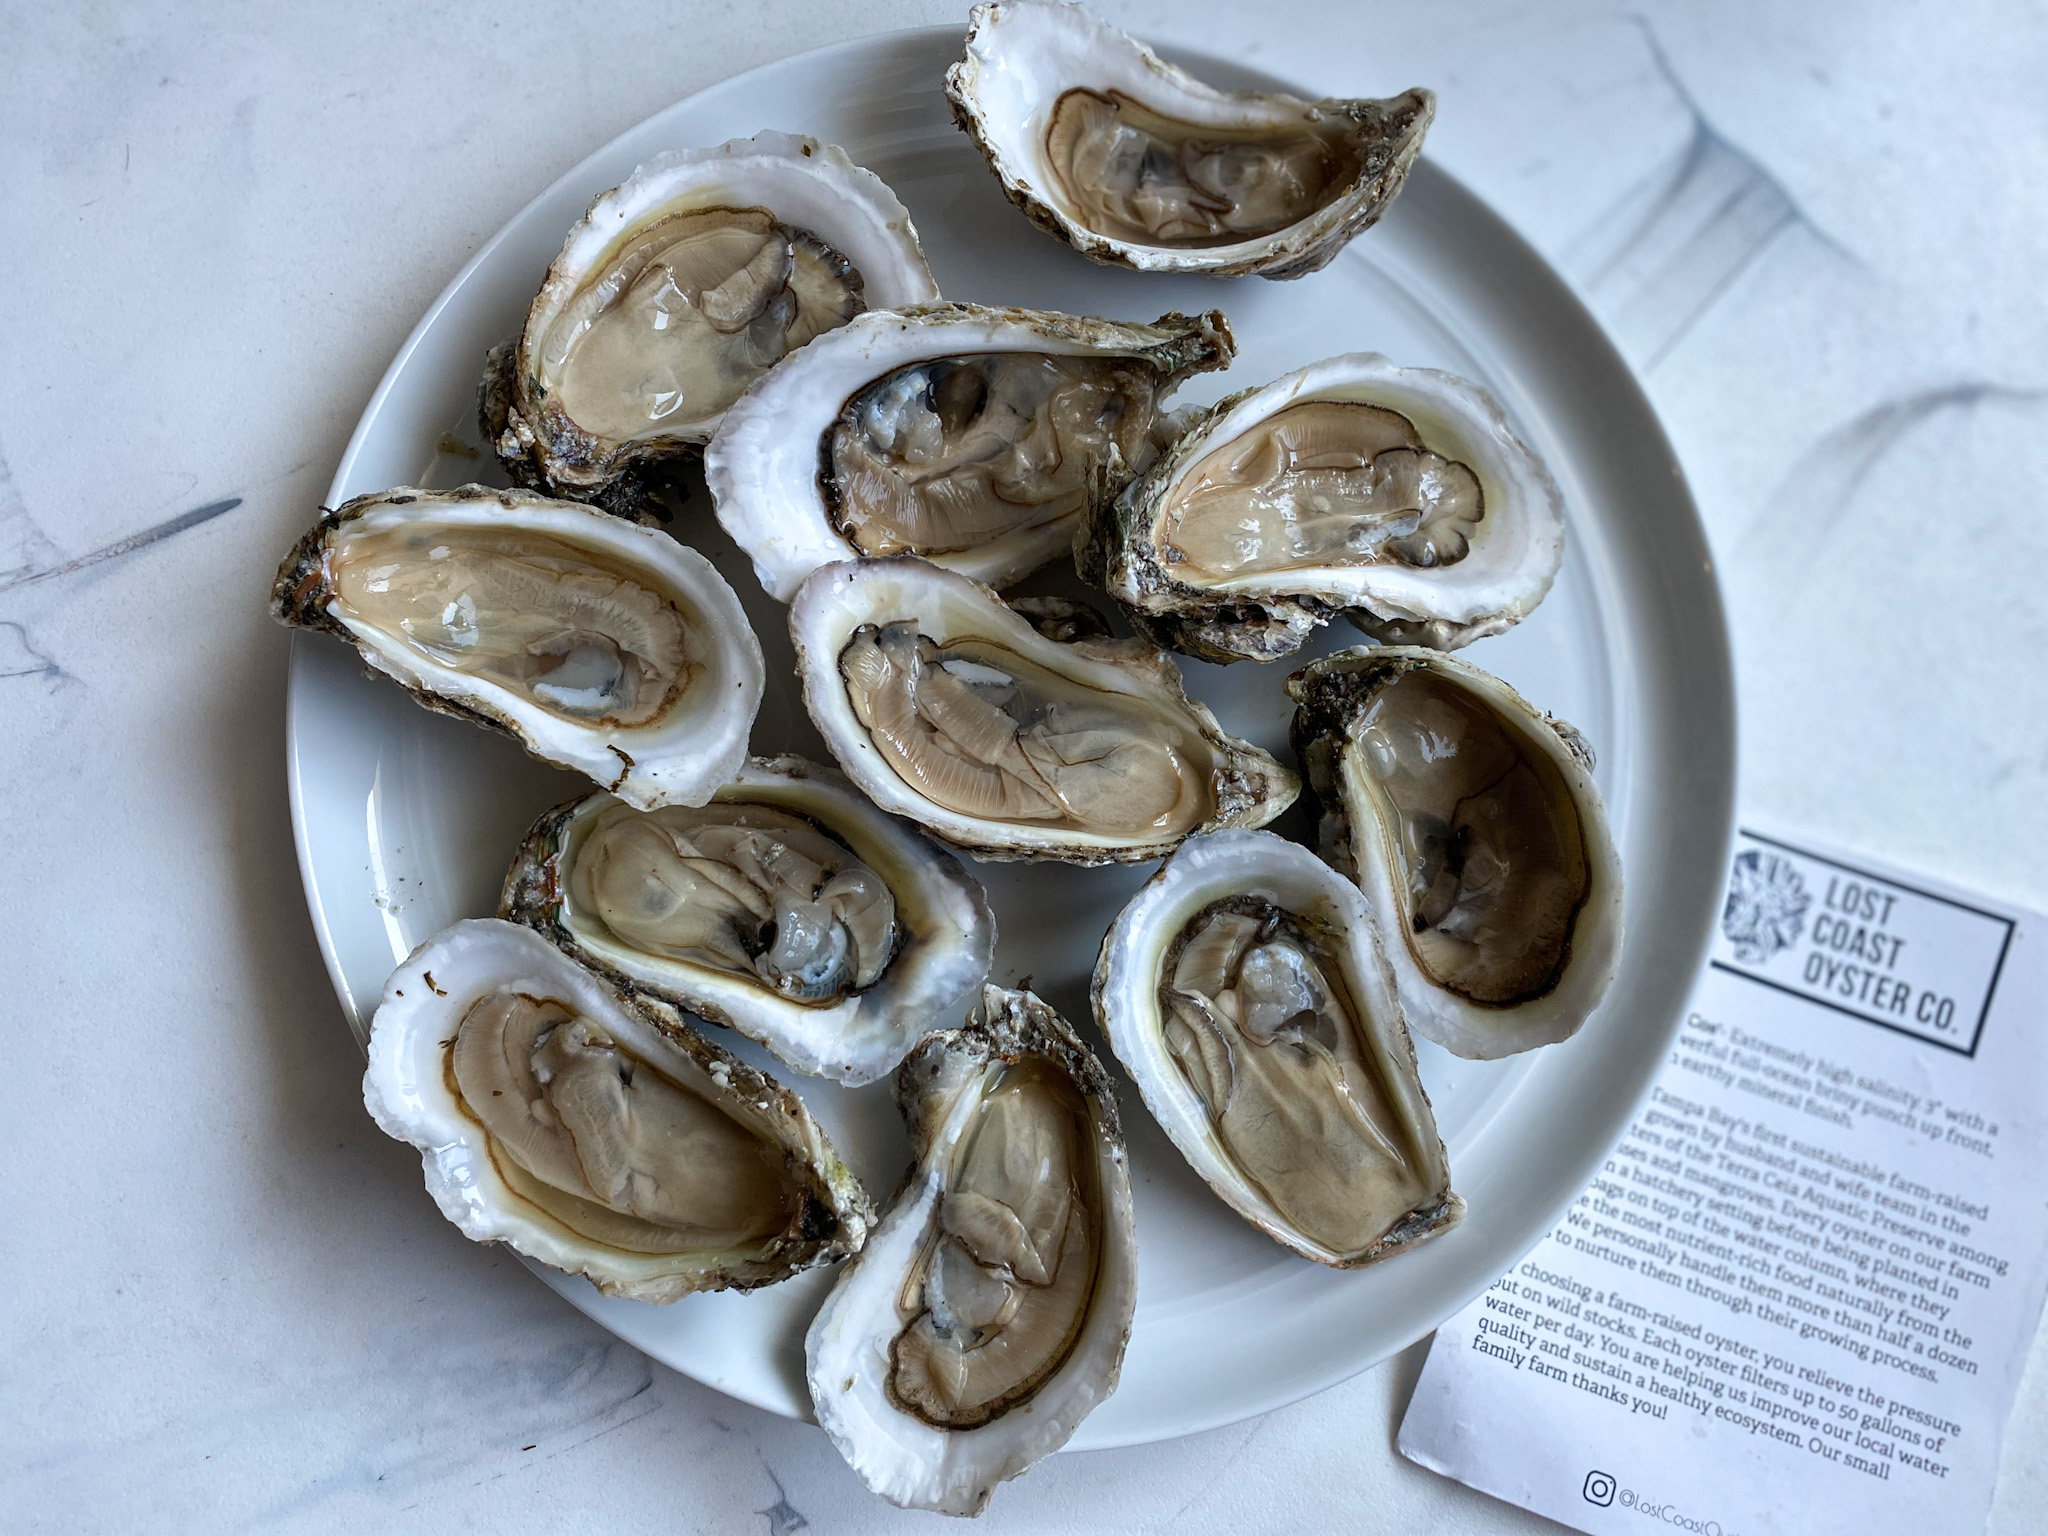 Shucked Lost Coast Oysters